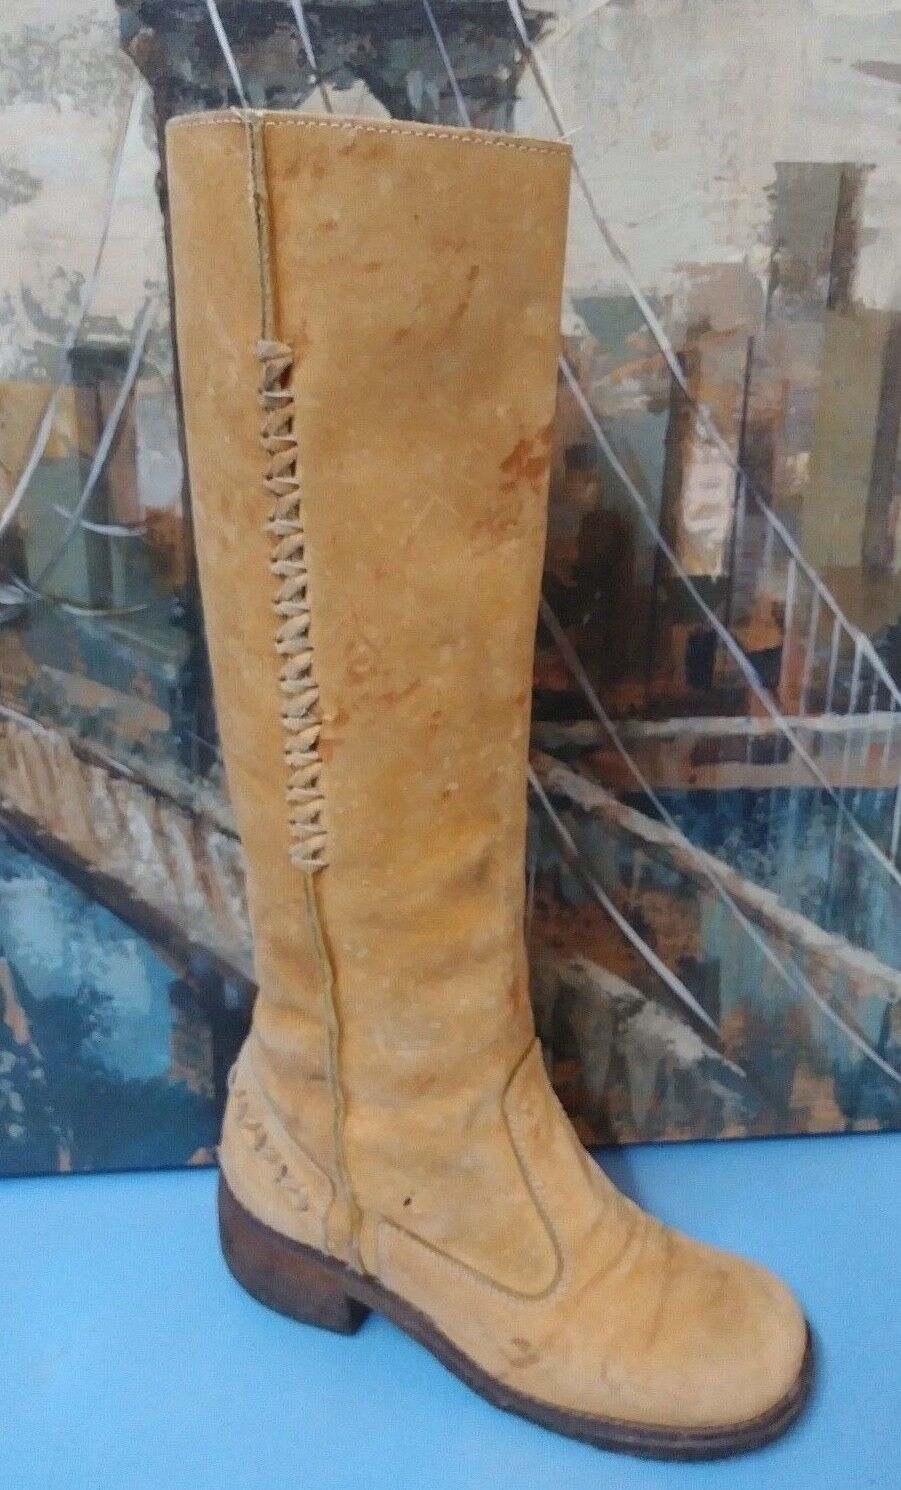 VTG WOMENS TALL LEATHER BROWN BOOTS SIZE 6.5 B